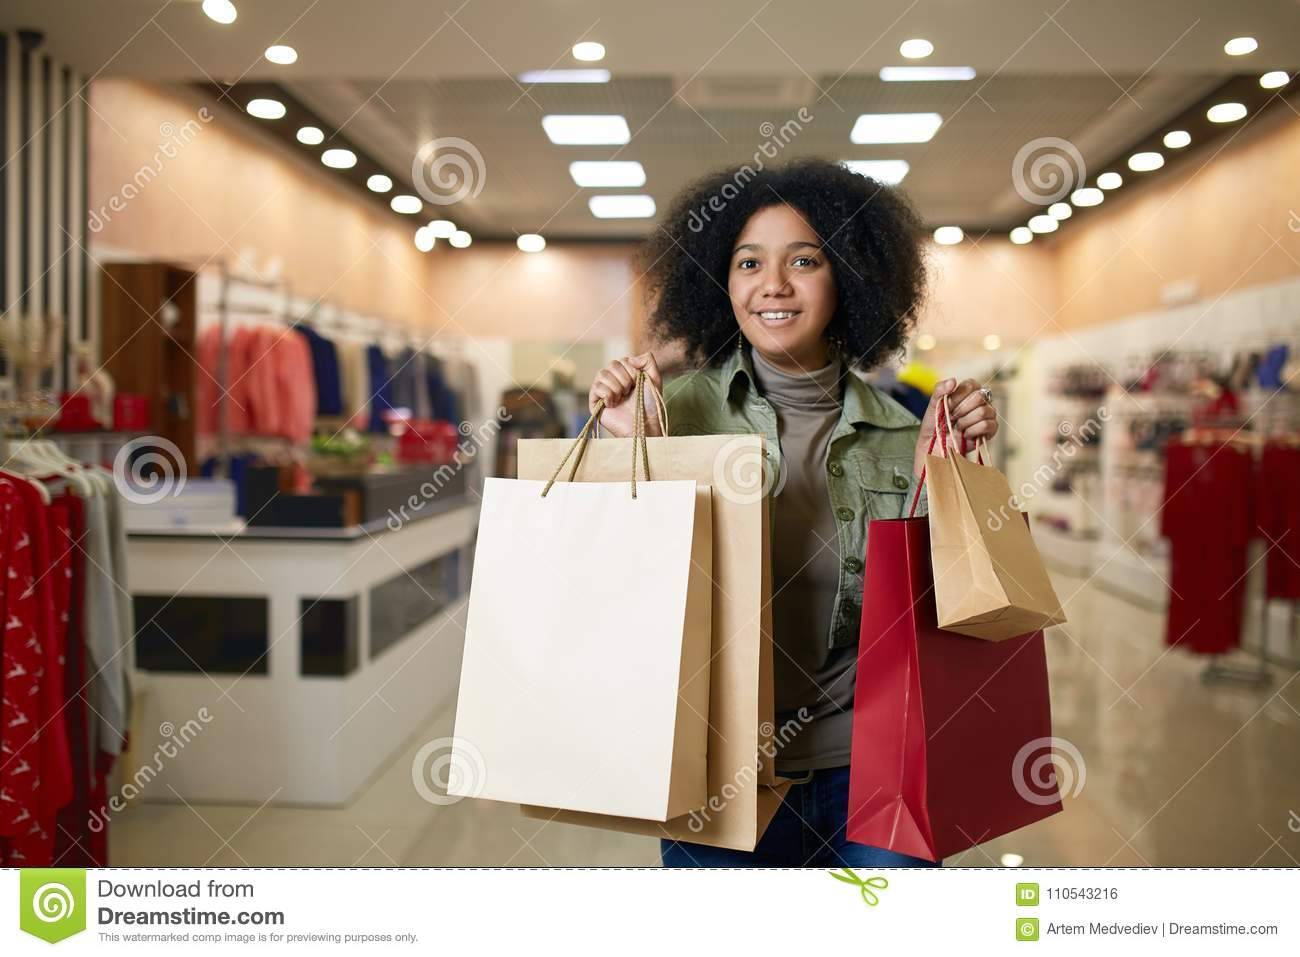 Download Attractive Young Cute African American Woman Posing With Shopping Bags With Clothing Store On Backgroud. Pretty Black Stock Photo - Image of american, people: 110543216